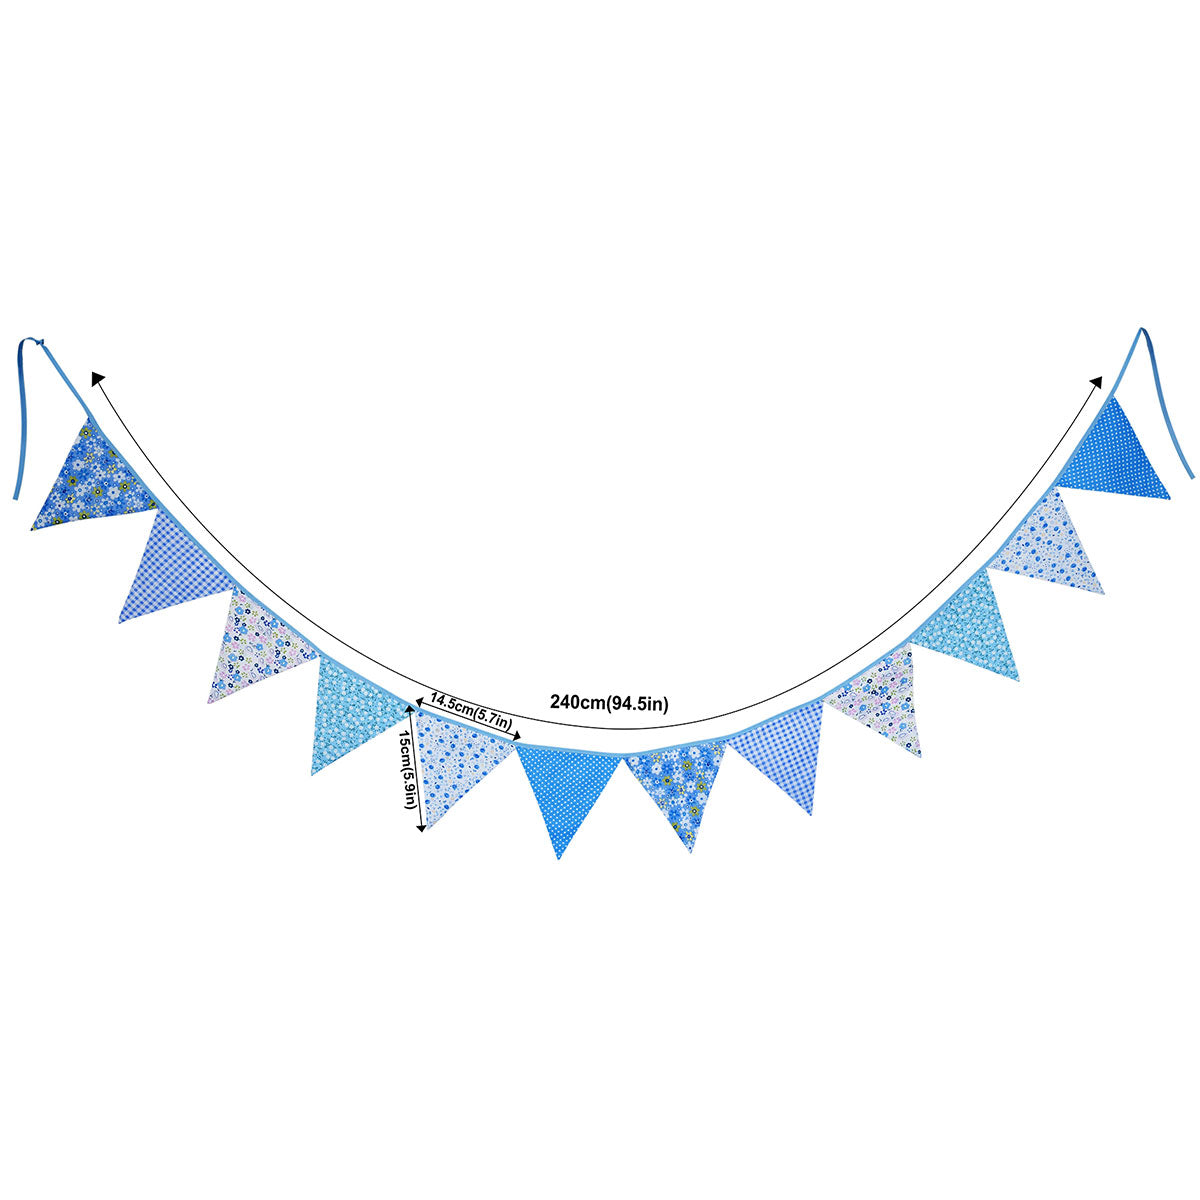 2 Blue Cotton Pennant Banners